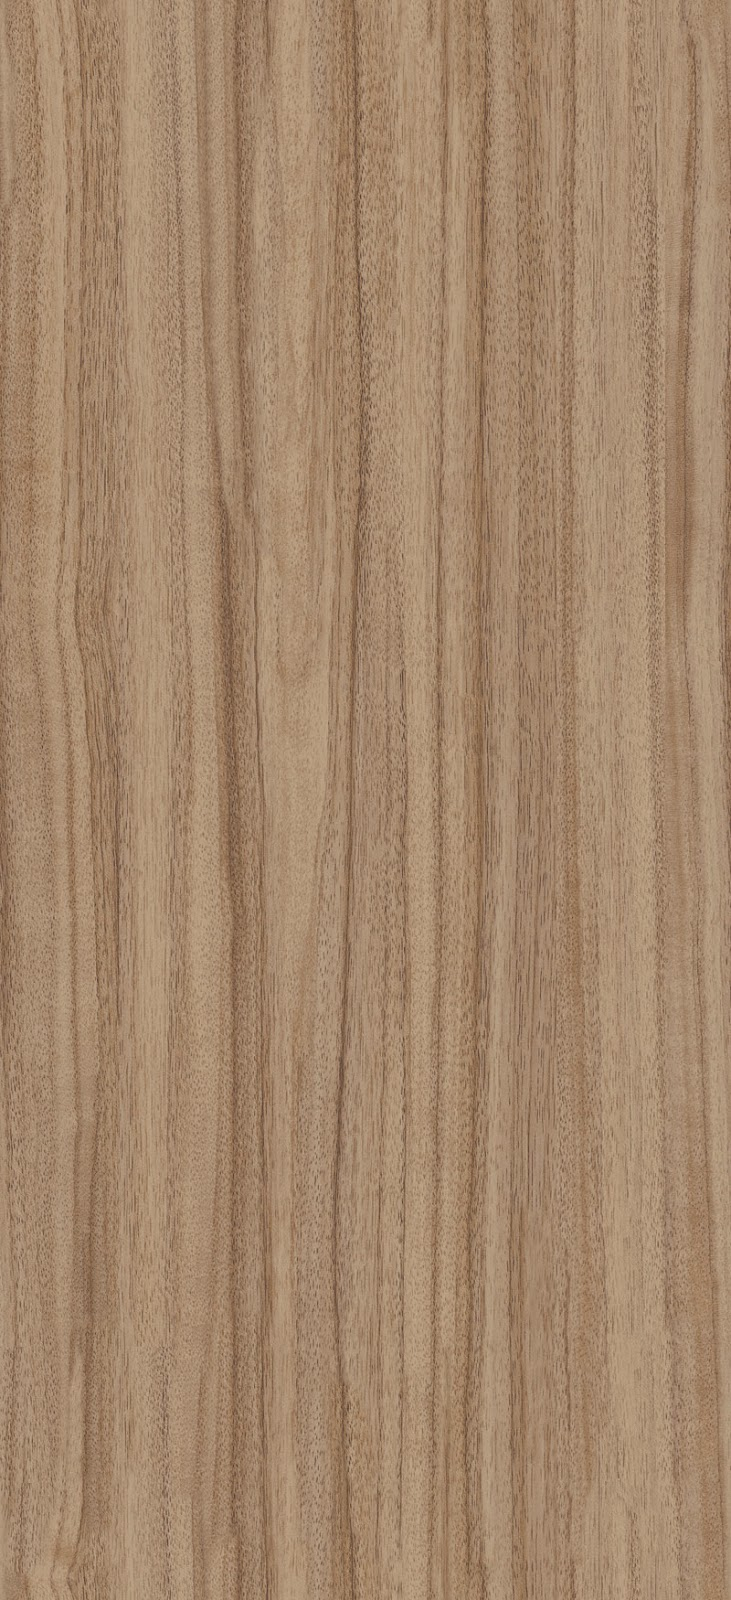 Seamless French Walnut Wood Texture | texturise: texturise.blogspot.com/2014/01/seamless-french-walnut-wood-texture...